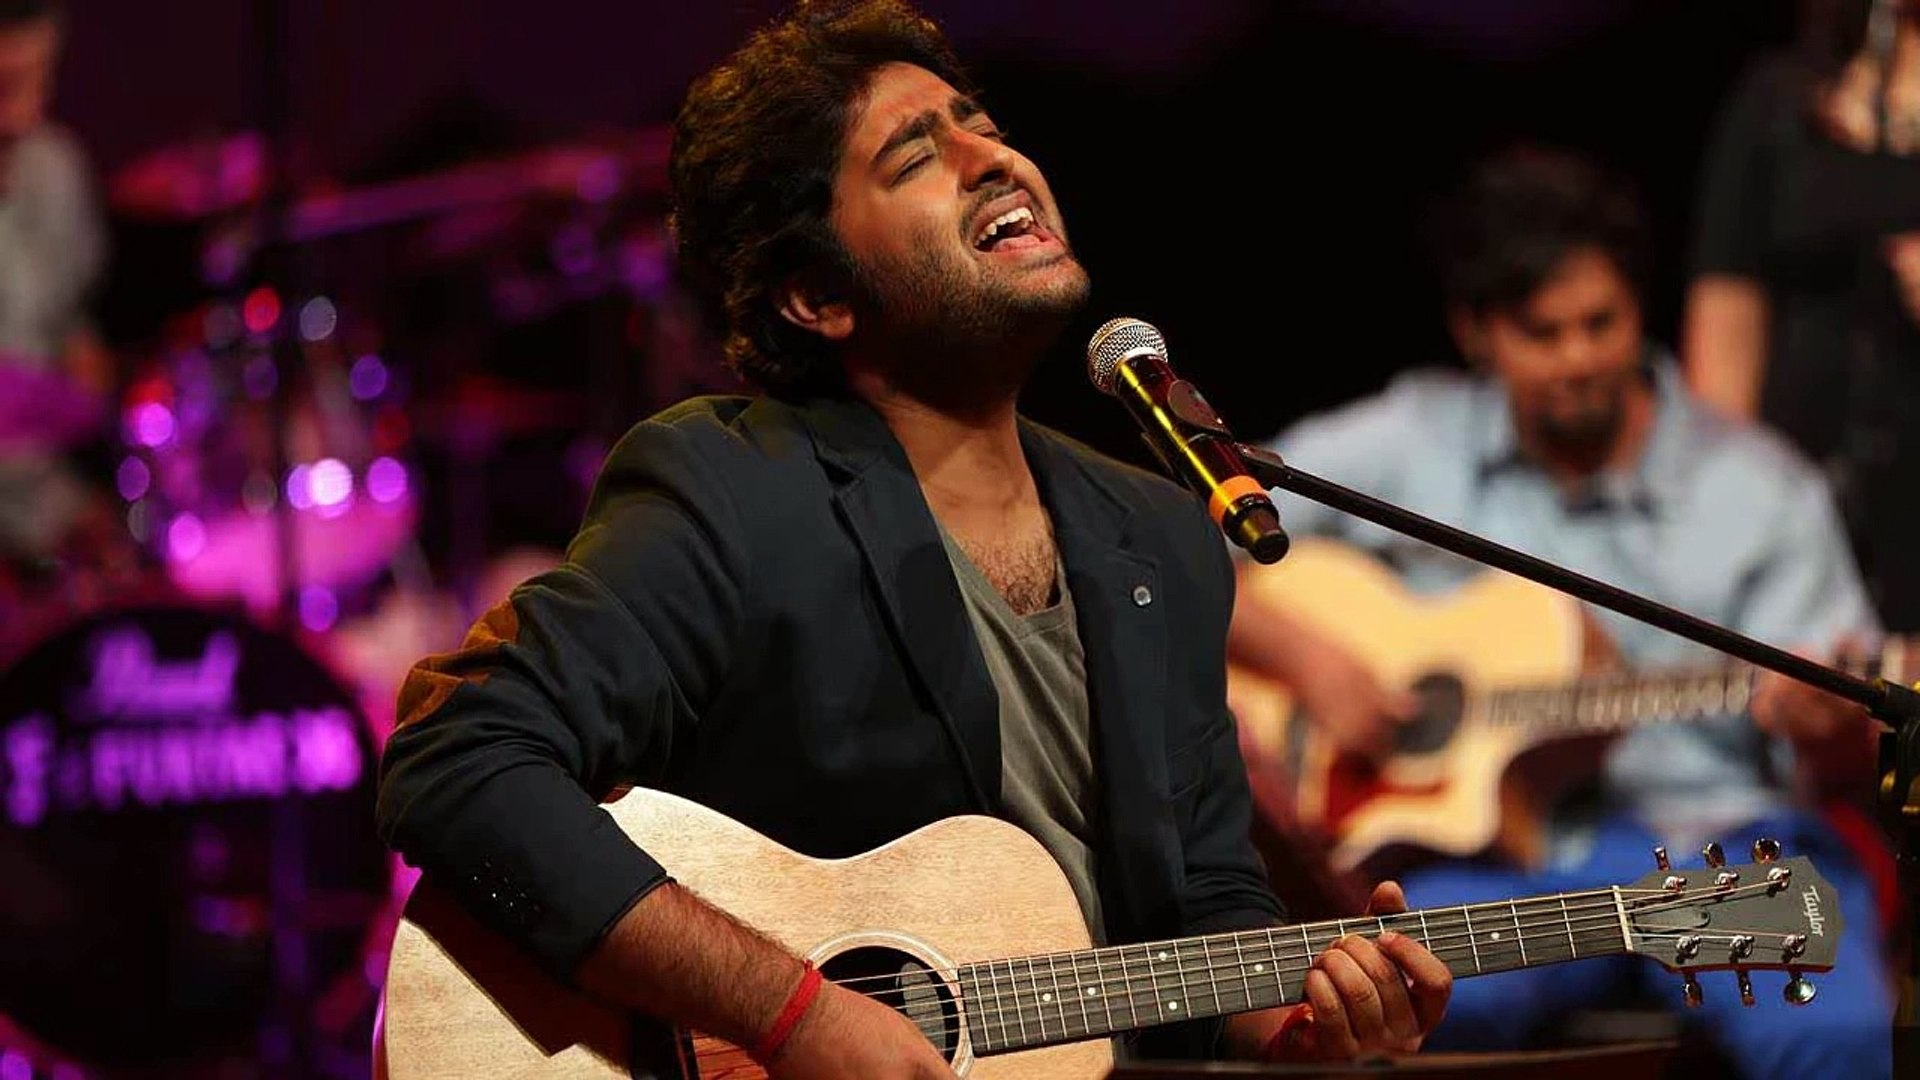 Arijit Singh unplugged full video all songs